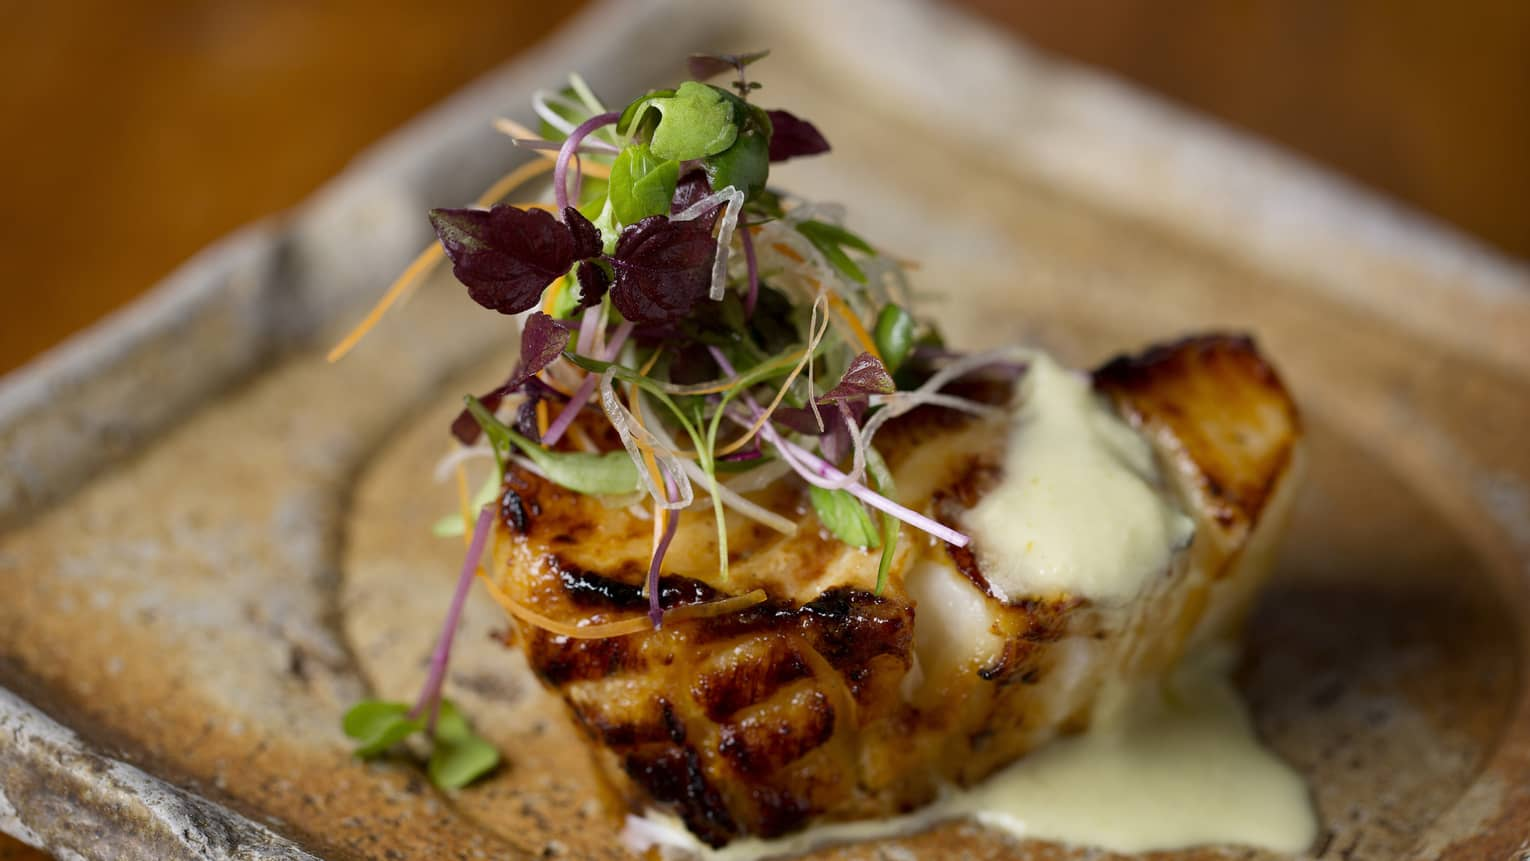 grilled chilean seabass with green chilli, ginger dressing